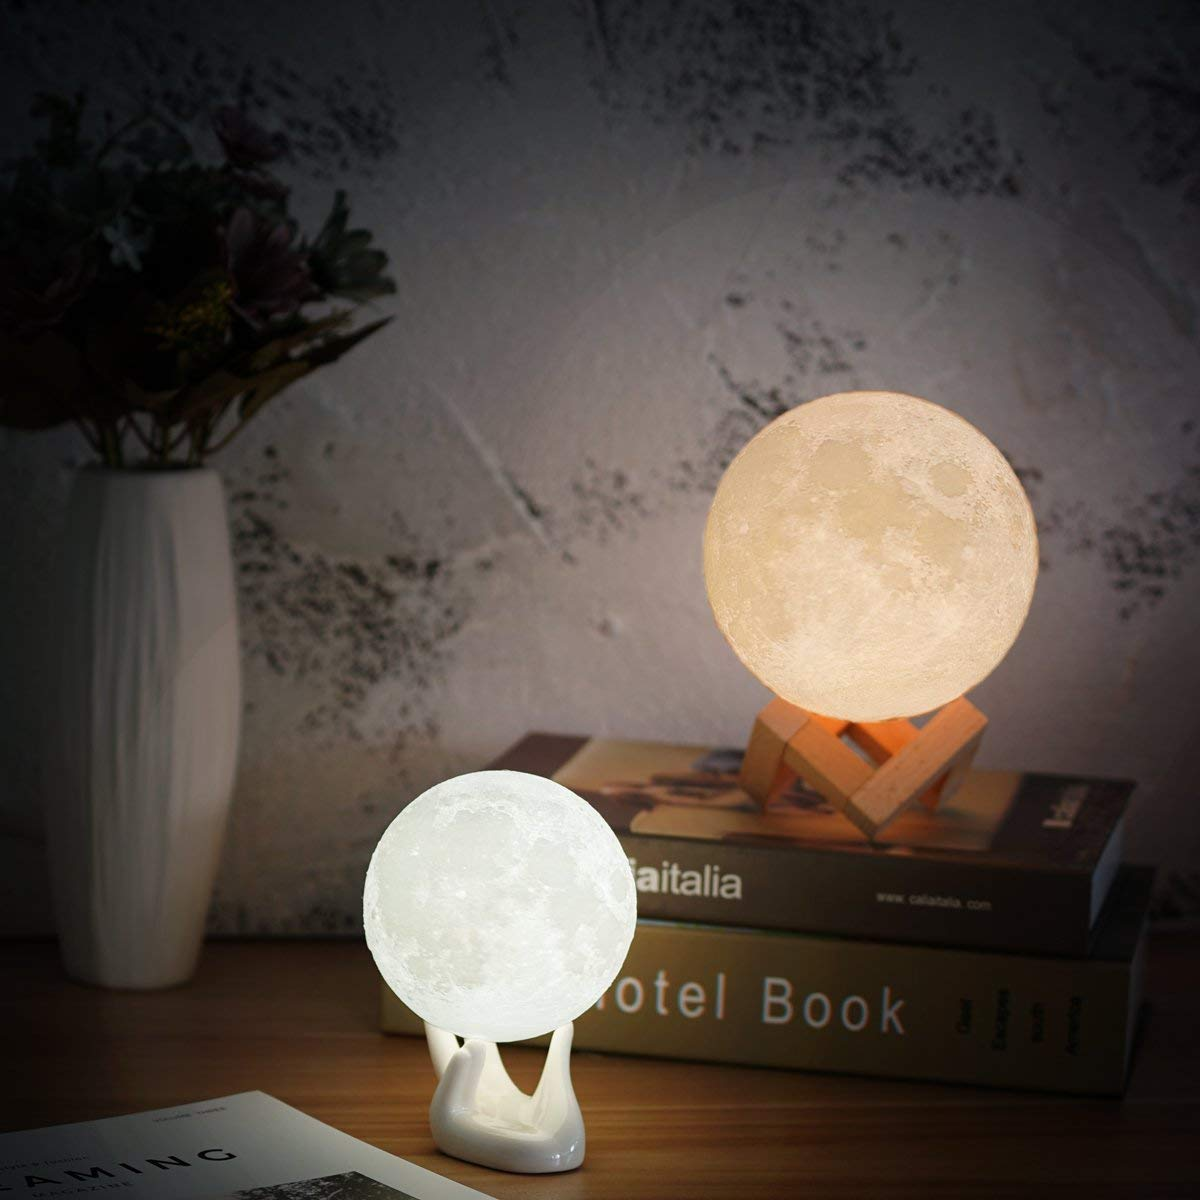 Balkwan Moon Lamp 3D Printing 5.9 inches Moon Light Dimmable with Touch Control Rechargeable Lunar Light Home Decorative Night Light Birthday Gifts for Women for Kids Gift for Romantic Gift